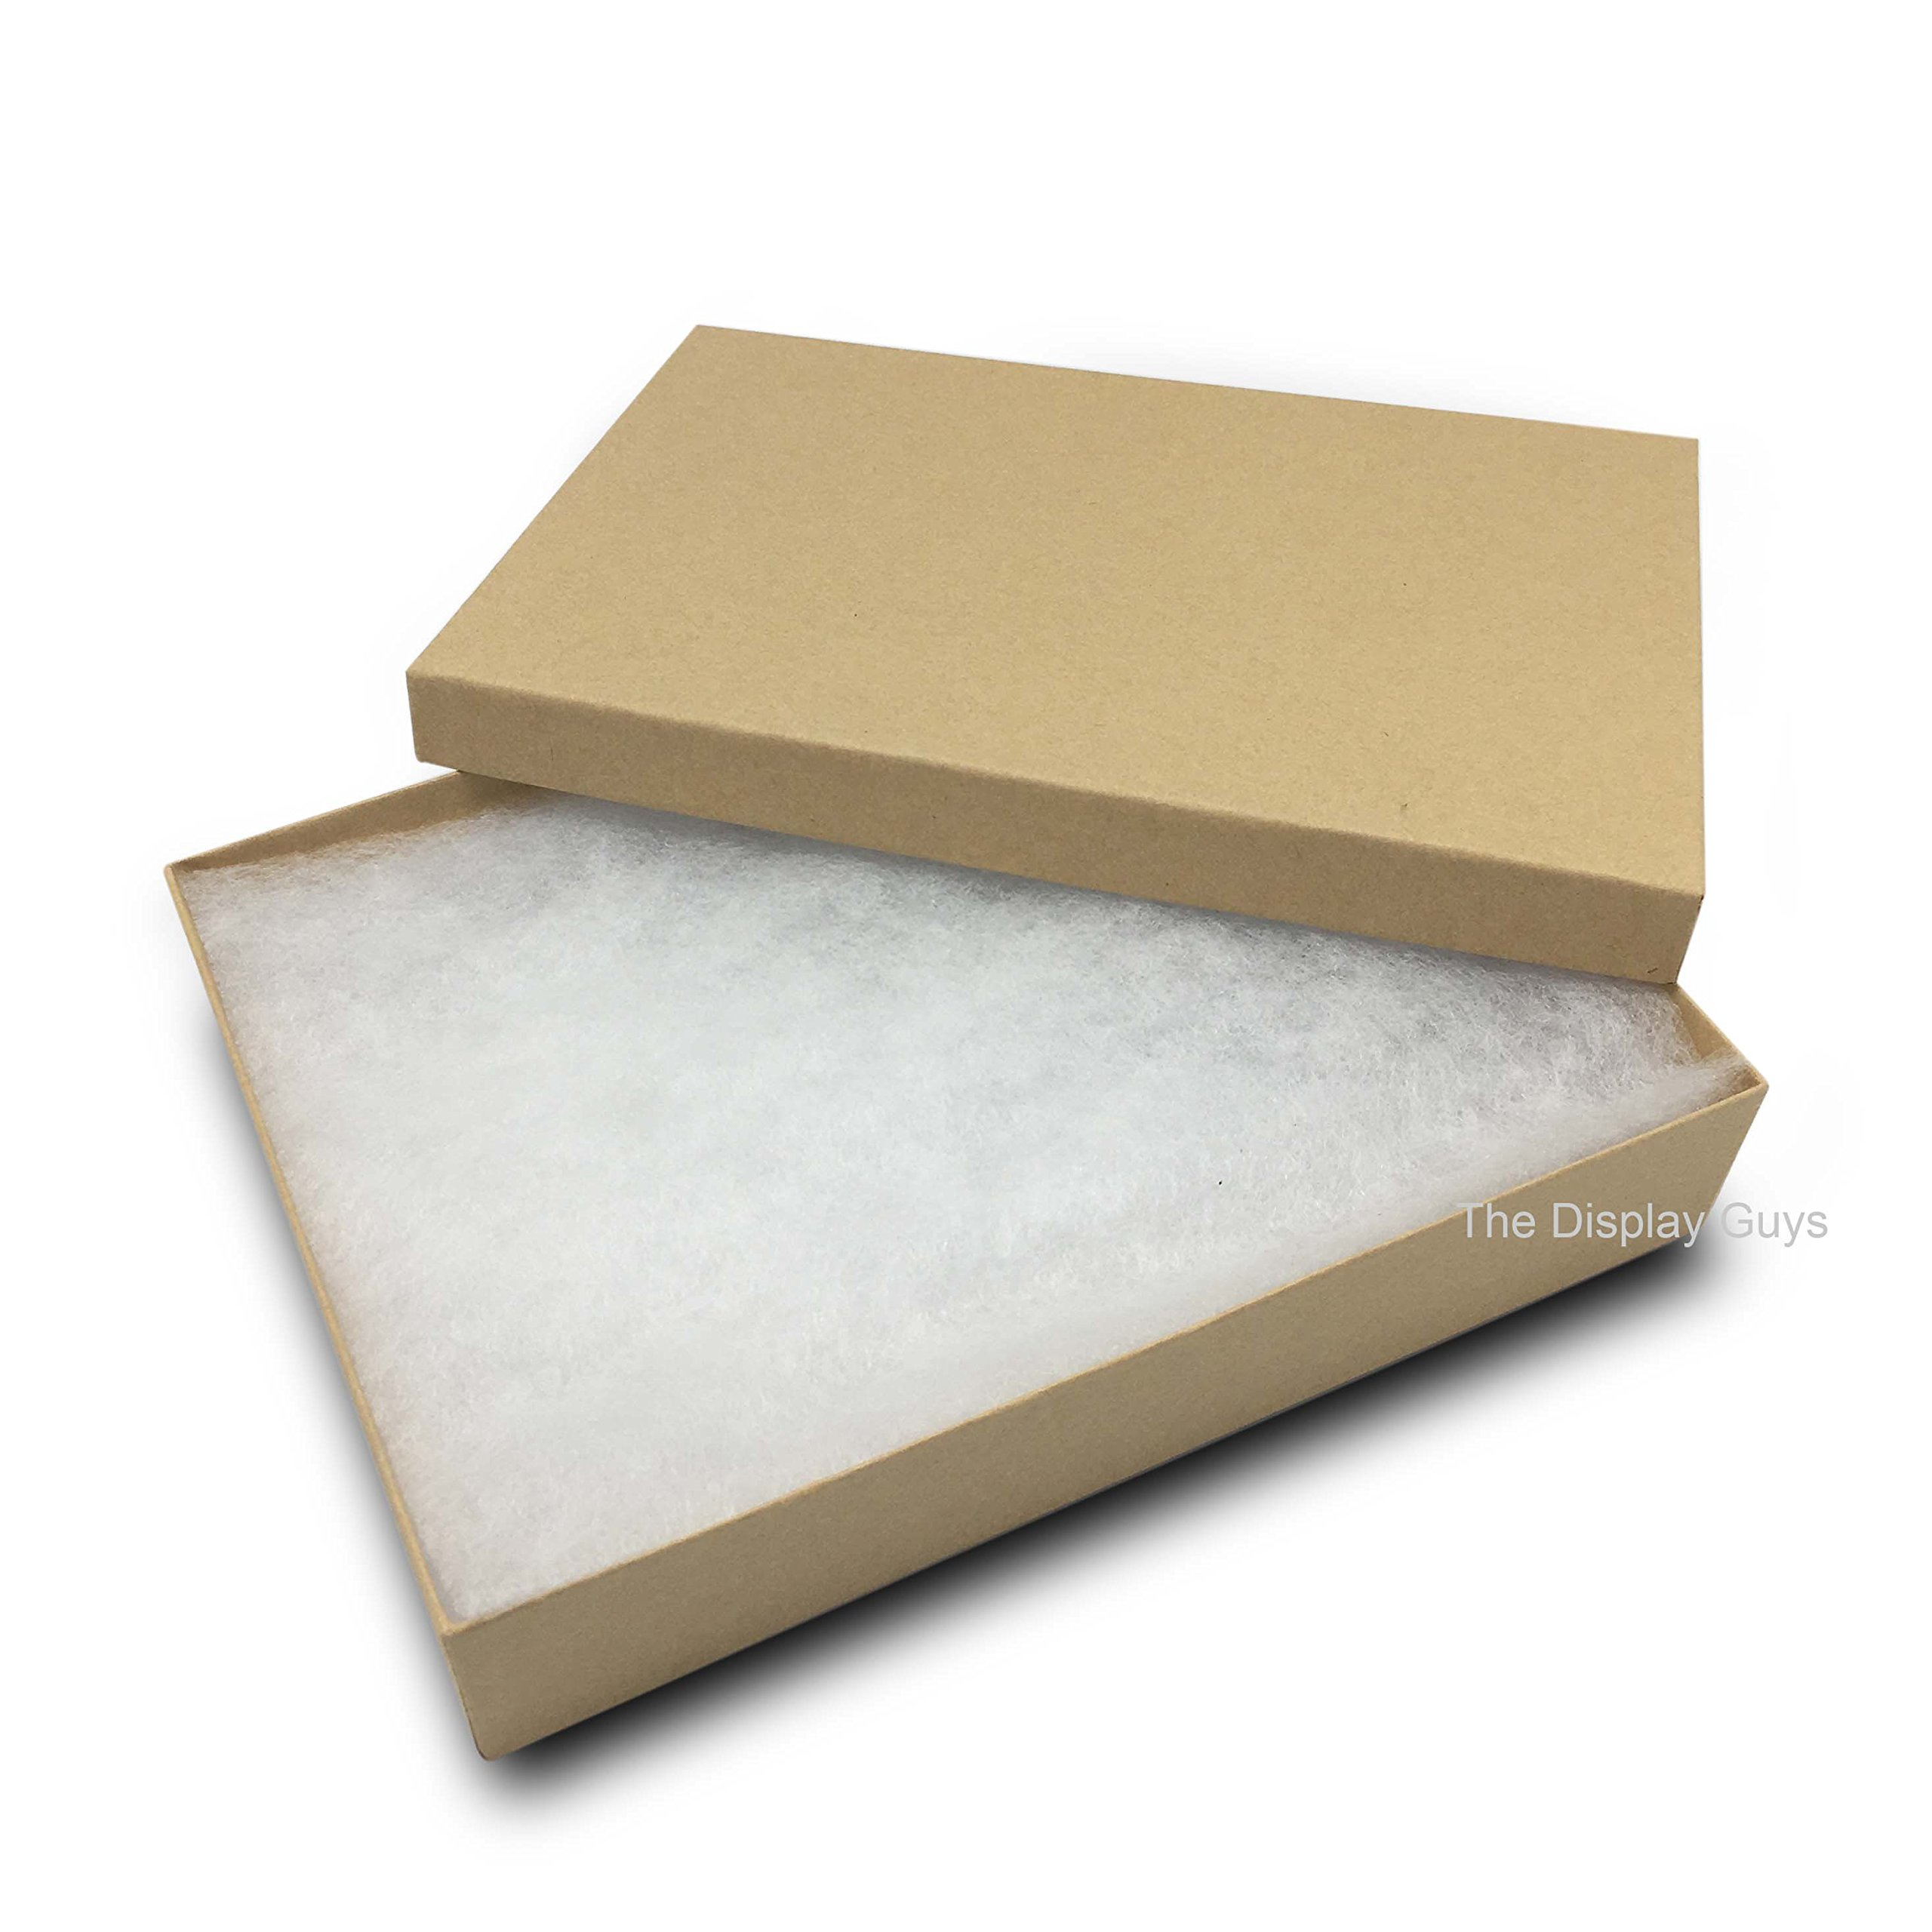 The Display Guys, Pack of 25 Kraft 5 3/8x3 7/8x1inches Cotton Filled Paper Jewelry Box Gift Display Case(#53)